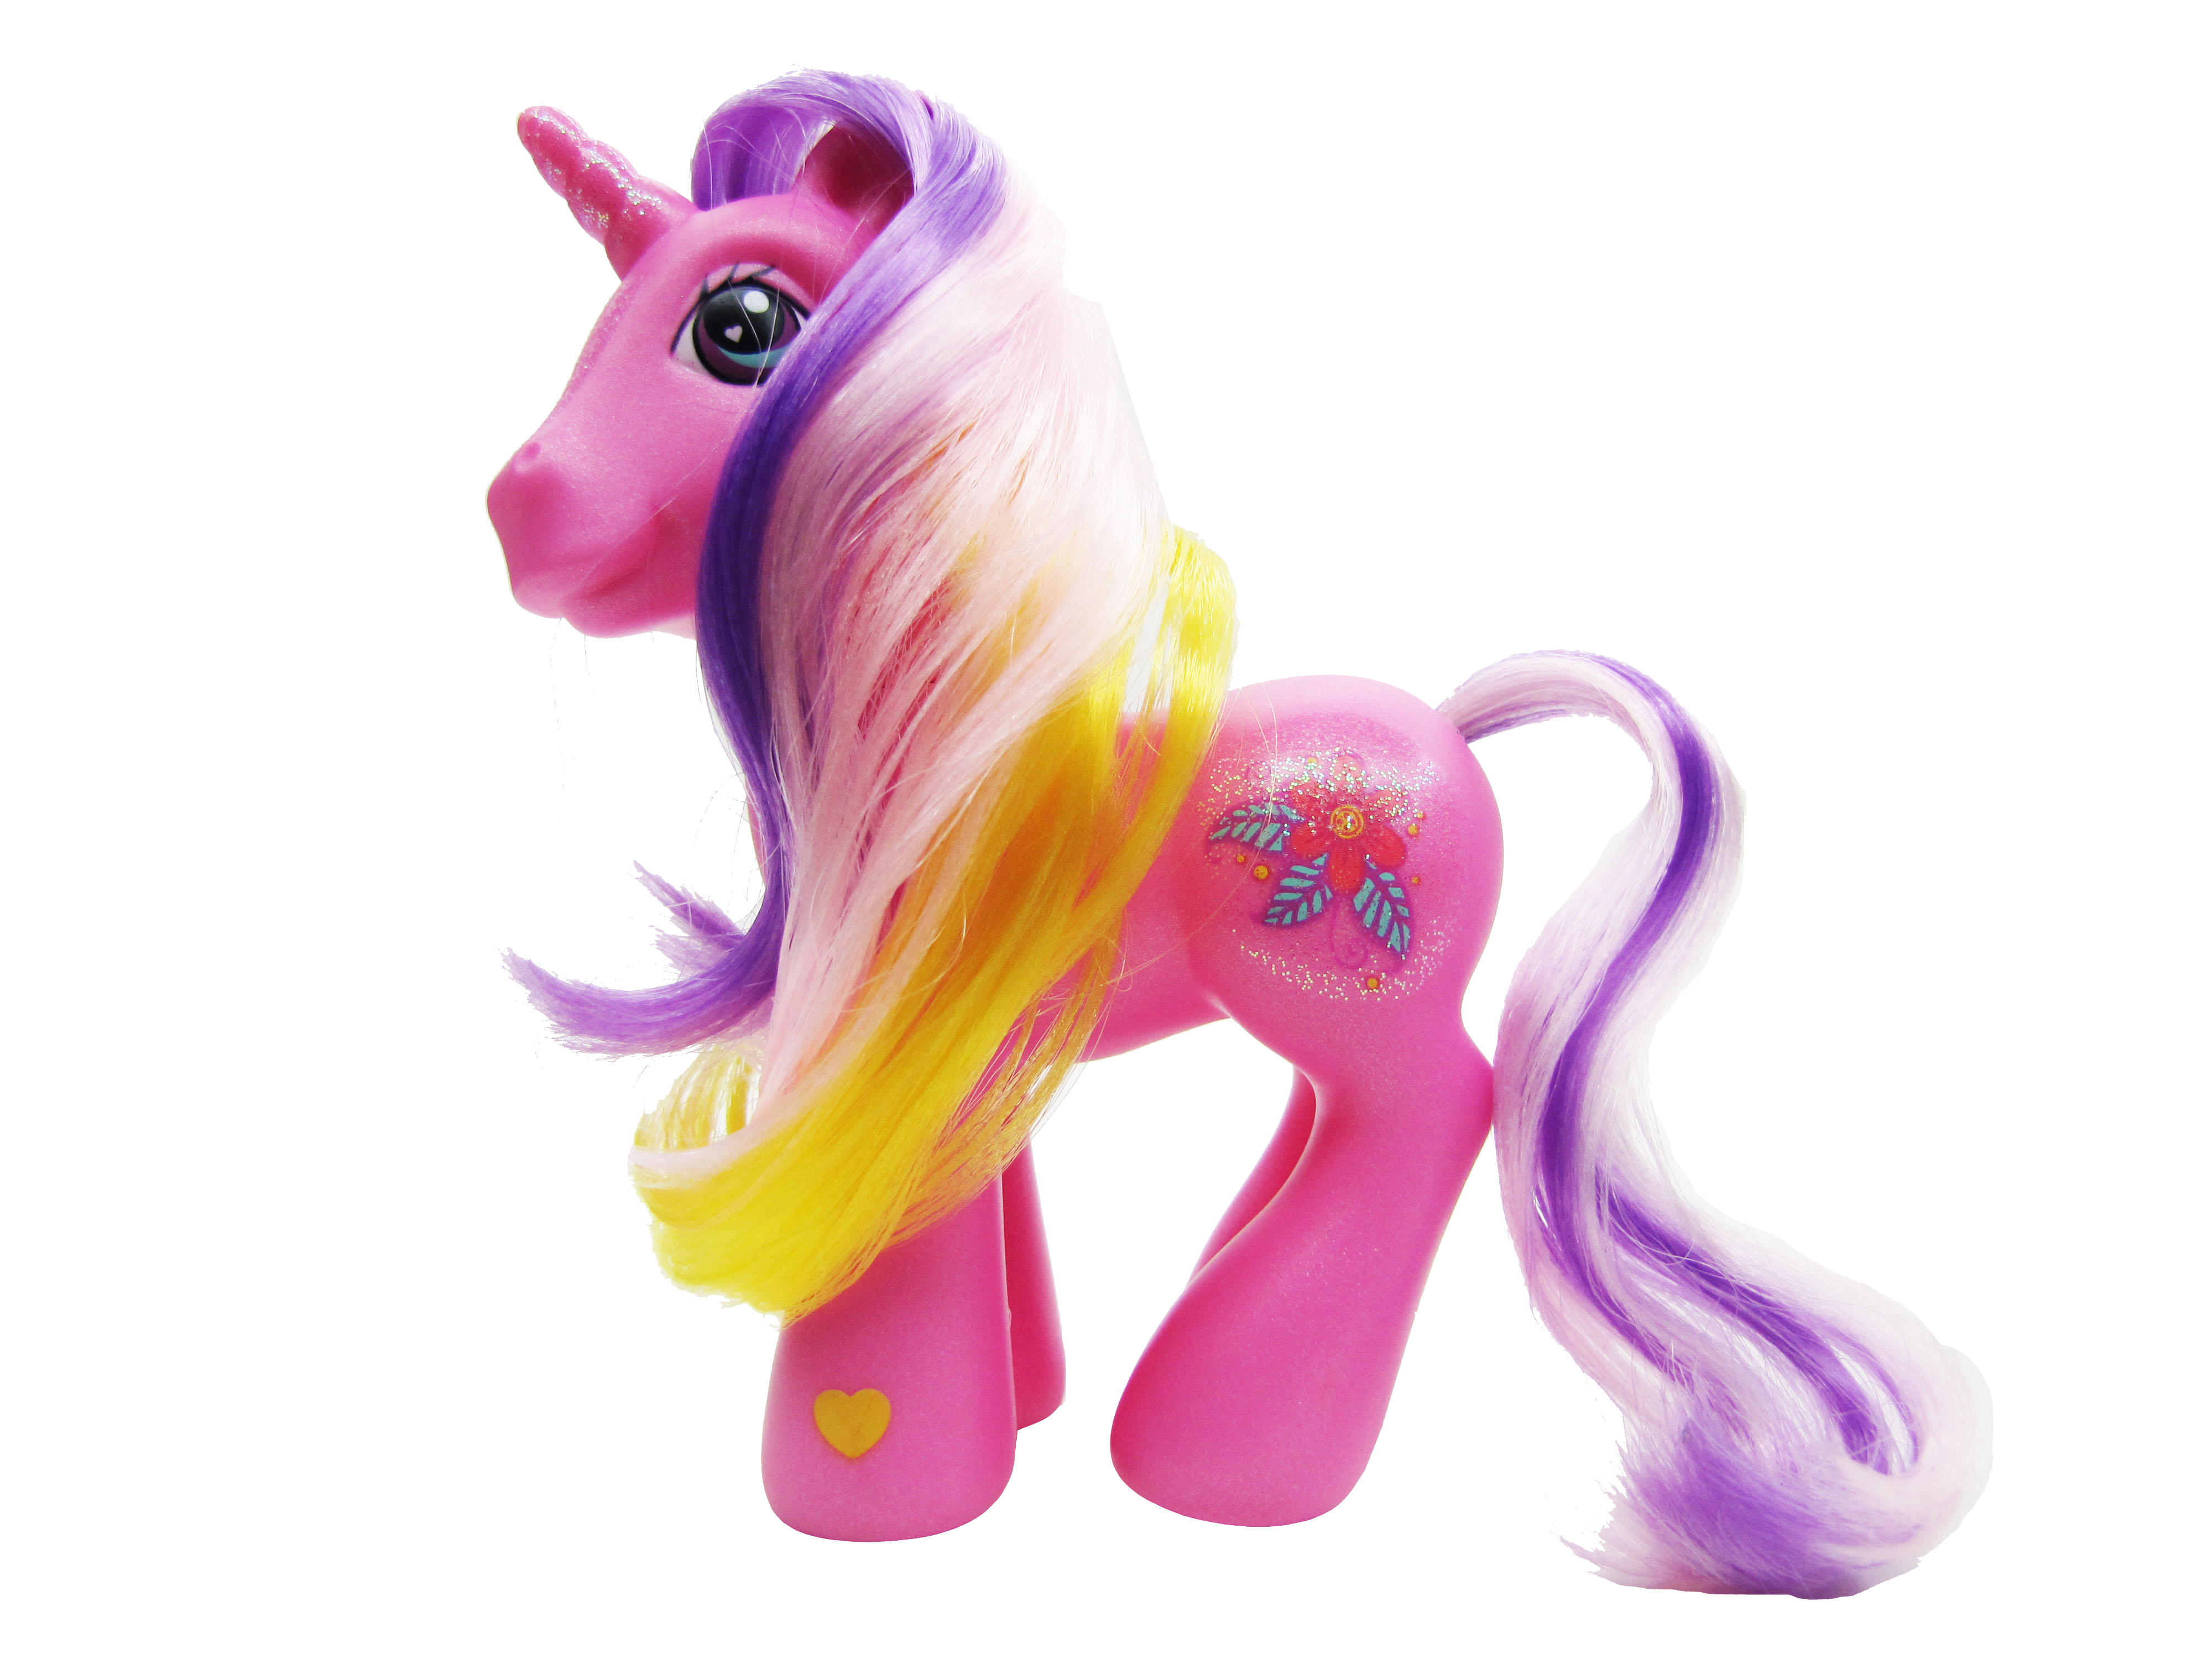 Displaying 13 gt  Images For - Mlp Flower Wishes   Flower Wishes Mlp